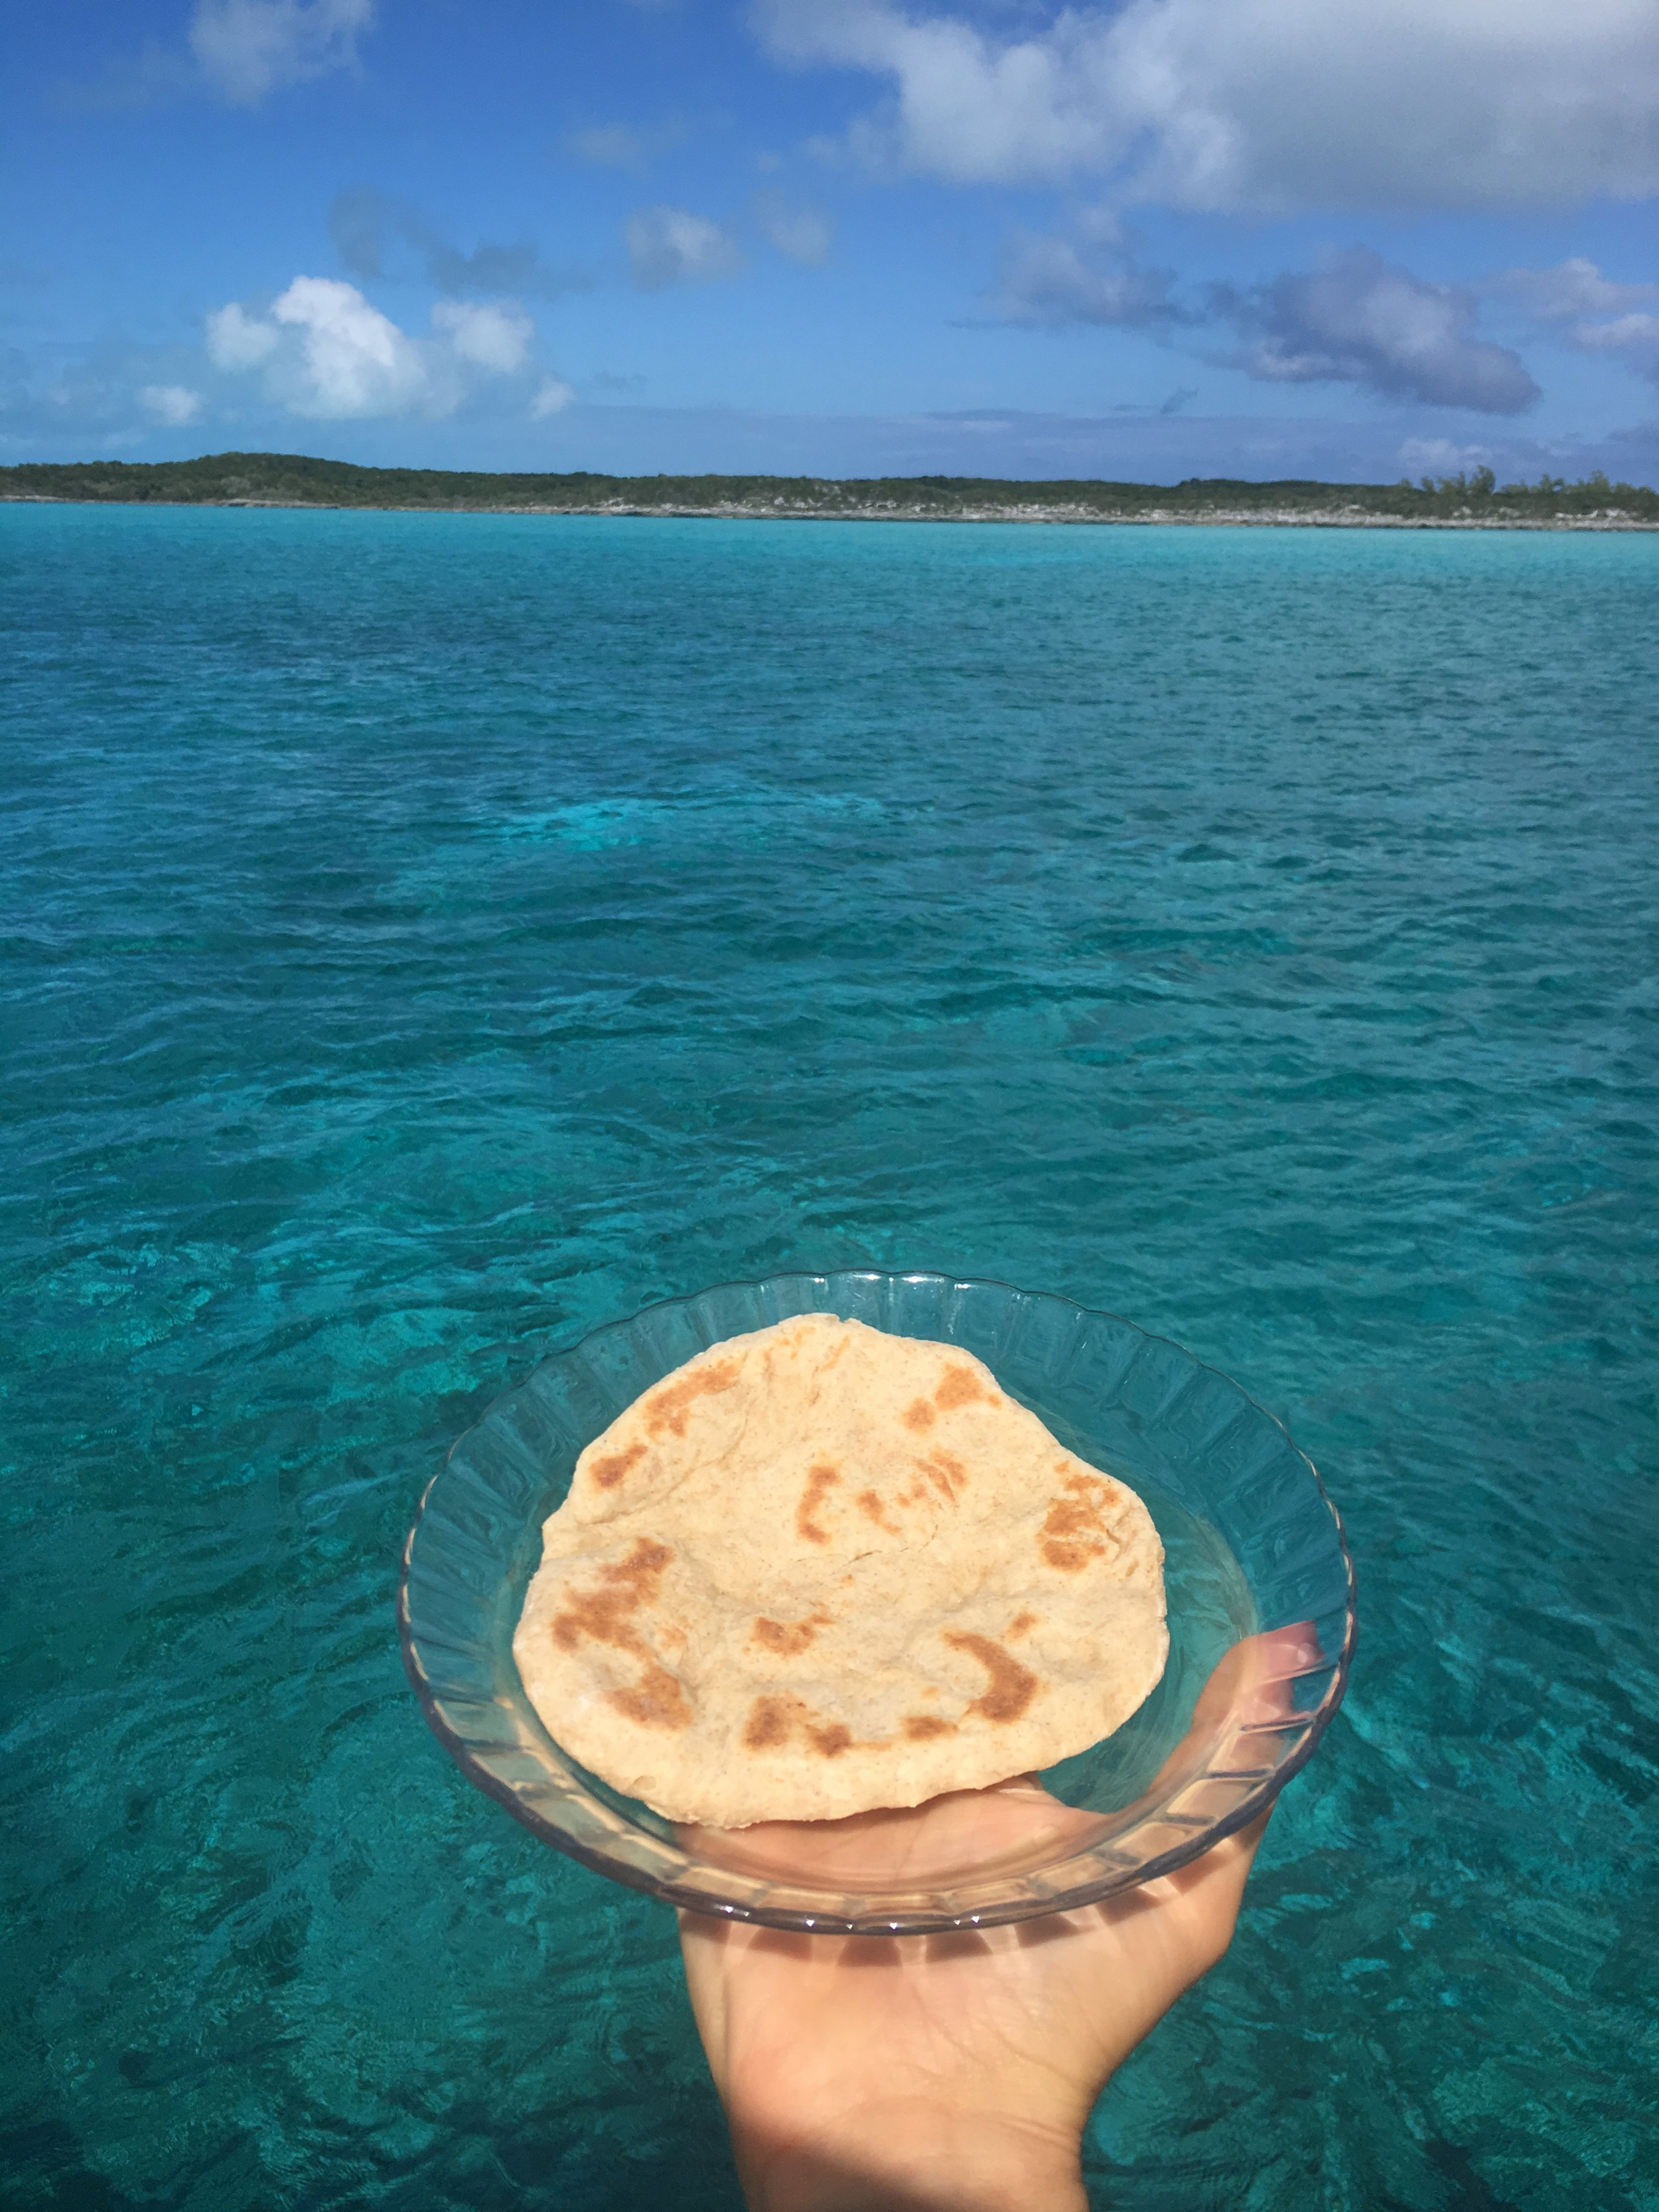 Naan in the wild